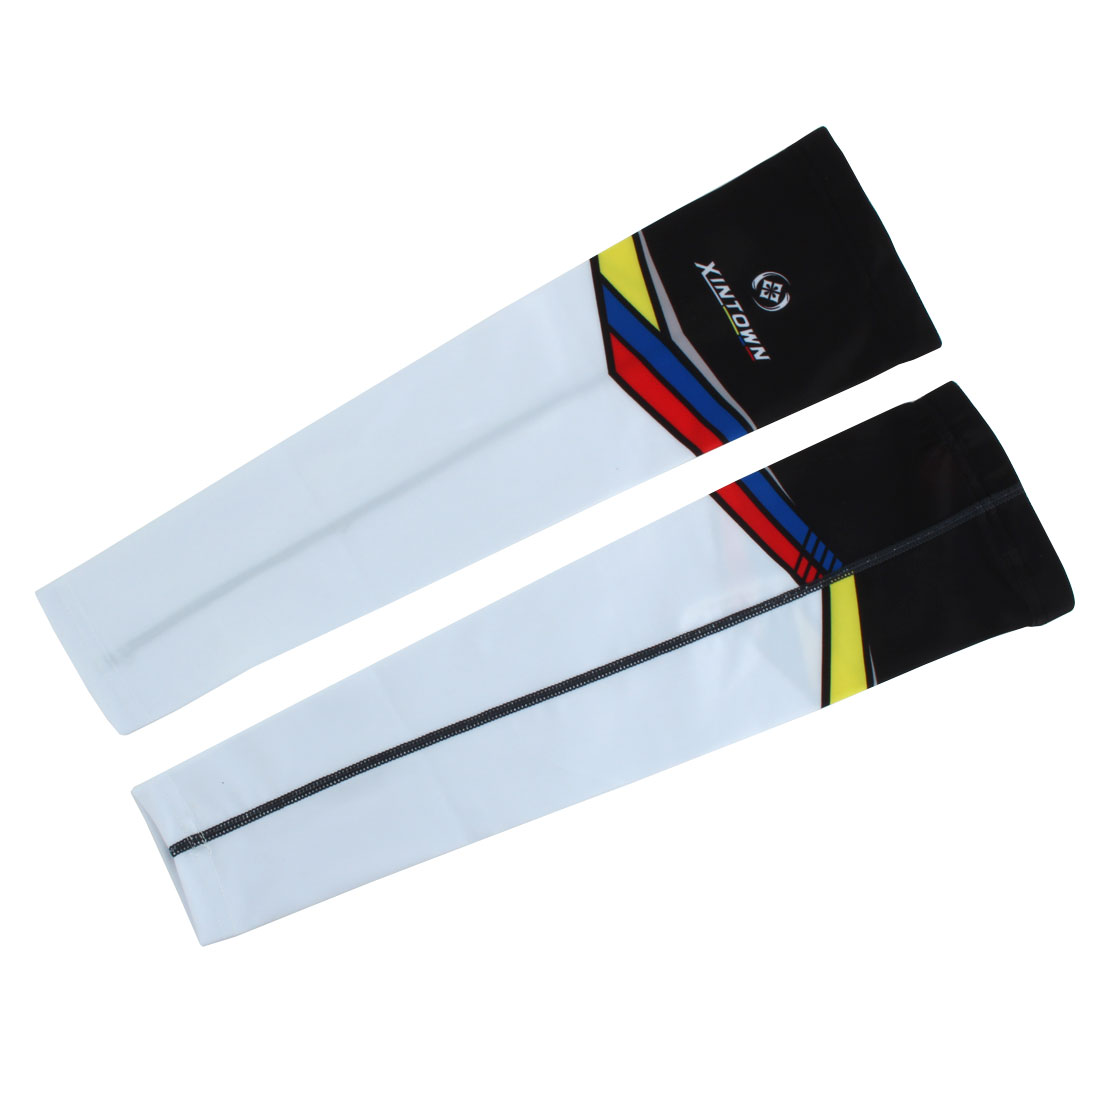 XINTOWN Authorized Unisex Cycling Football Arm Sleeves Cover Warmer #6 3XL Pair by